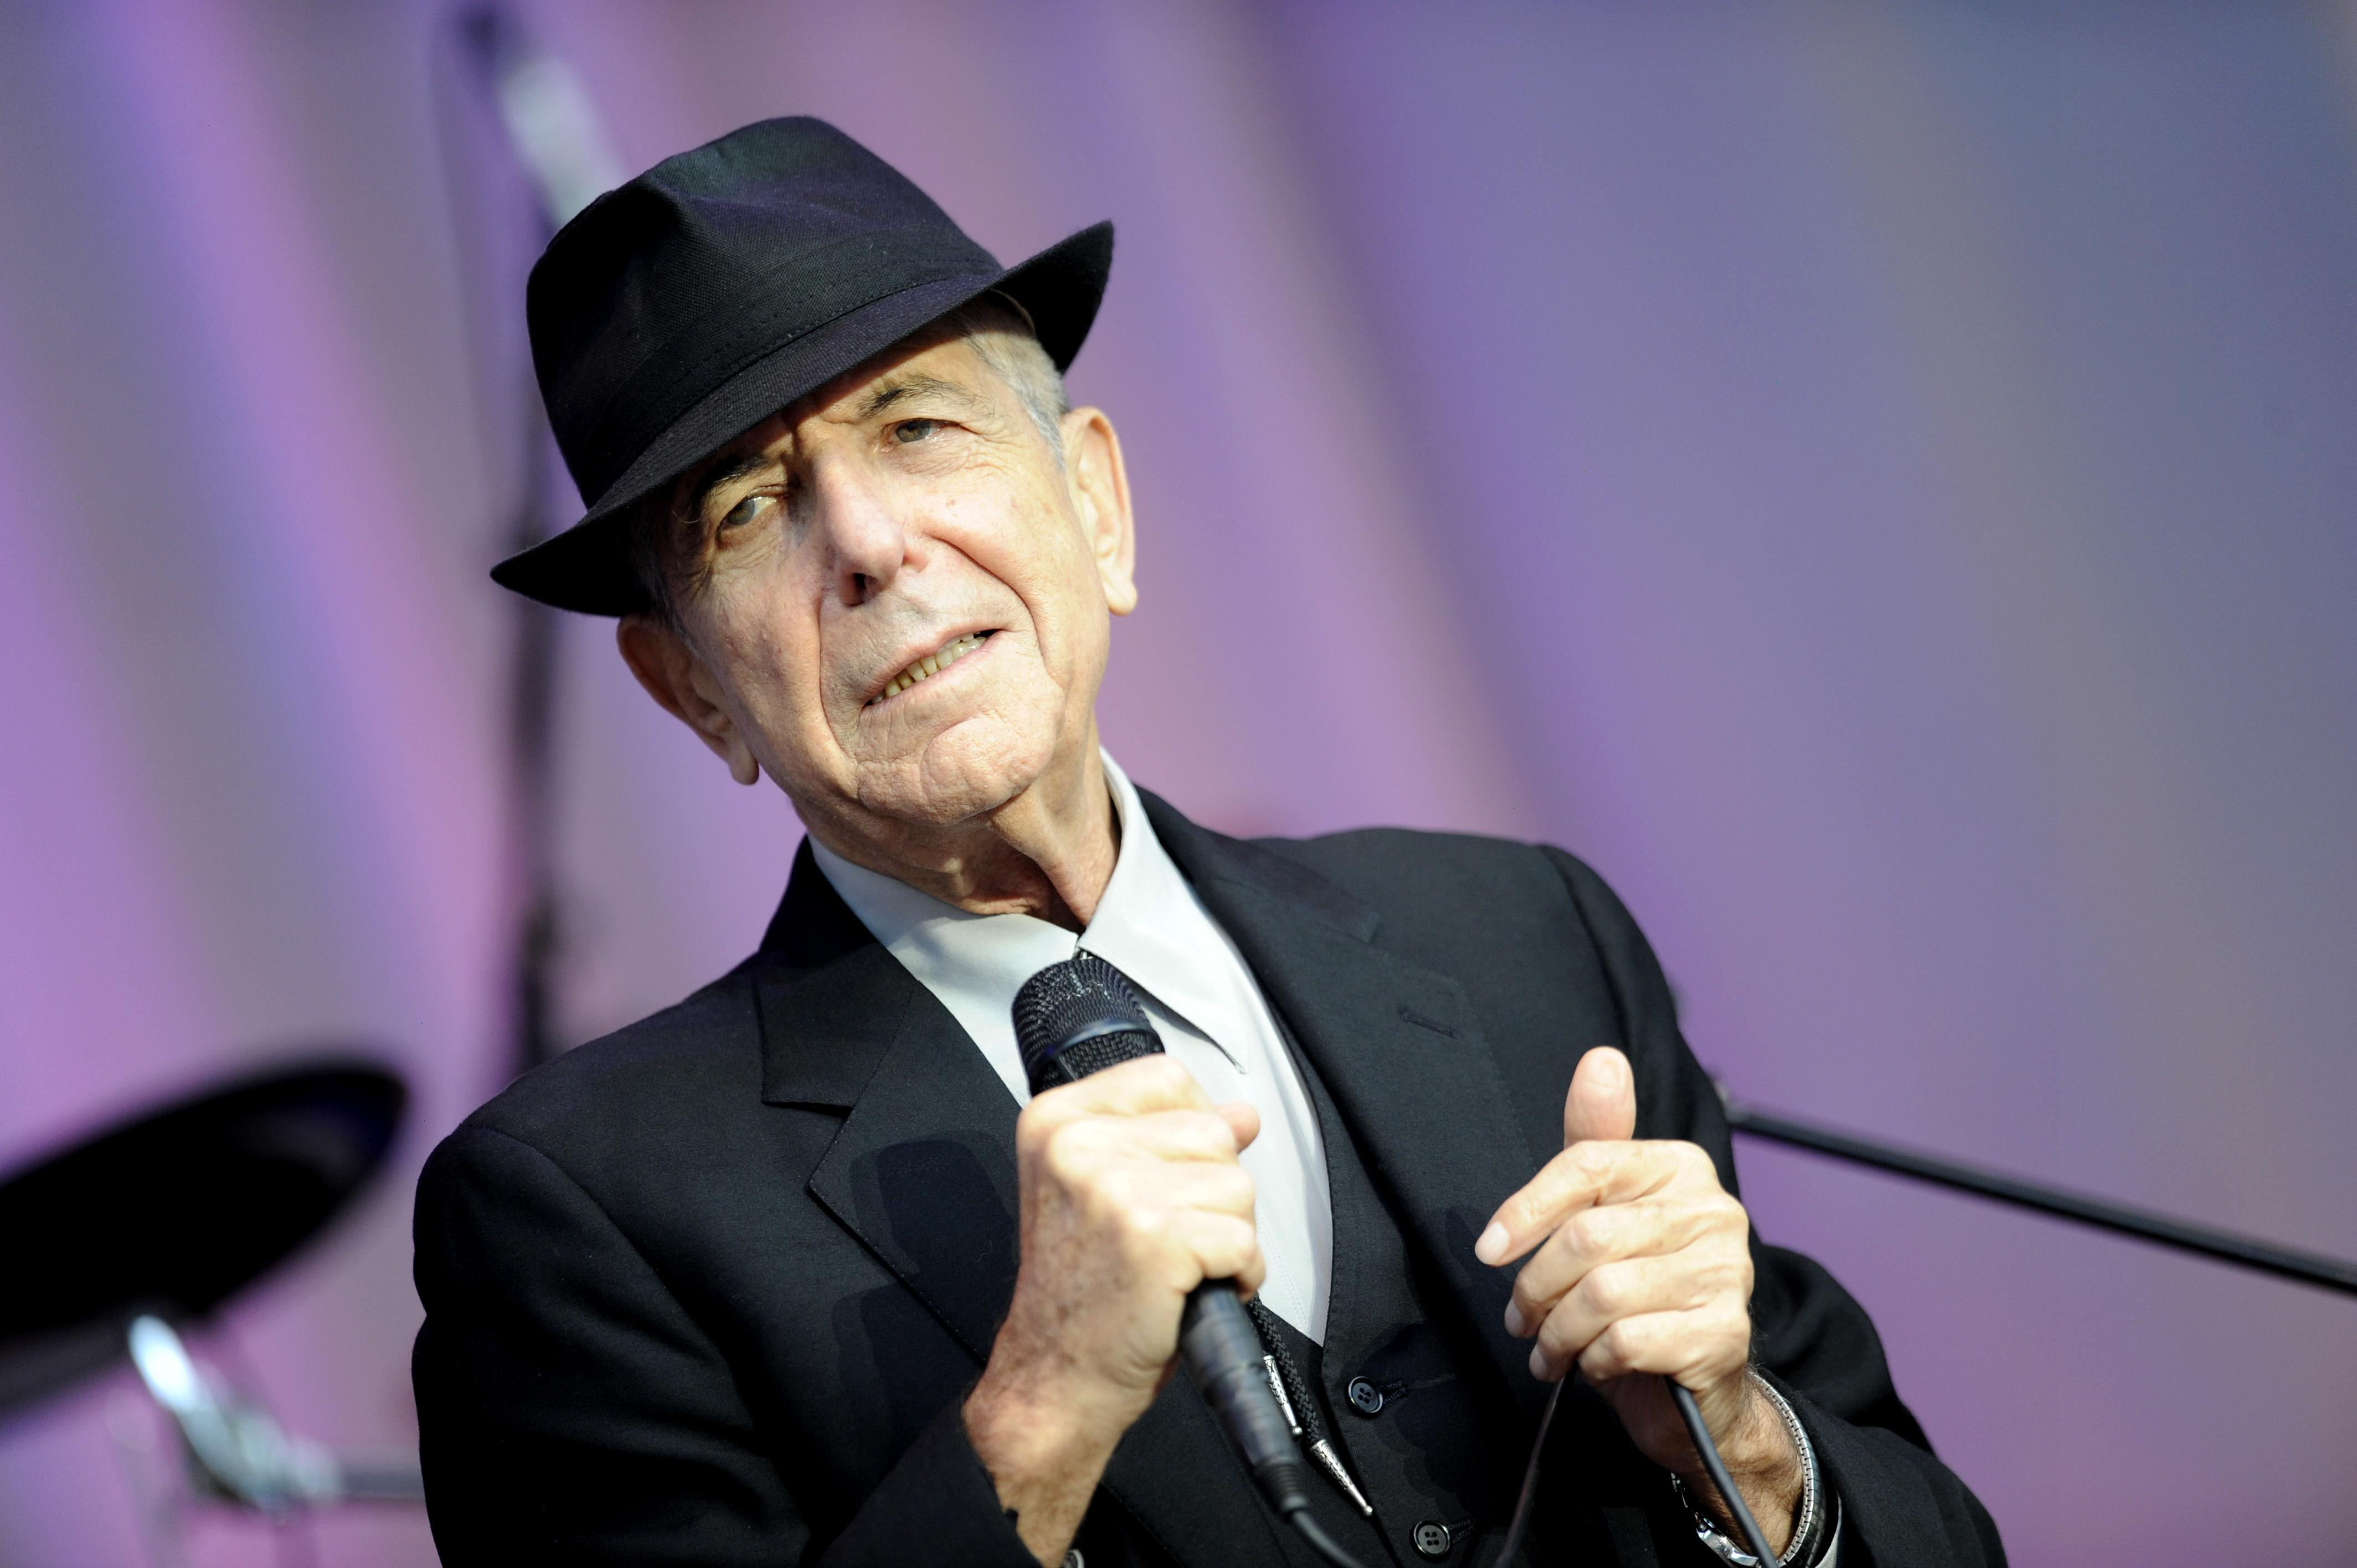 leonard cohen 39 s manager gives new details about his death cbs news. Black Bedroom Furniture Sets. Home Design Ideas